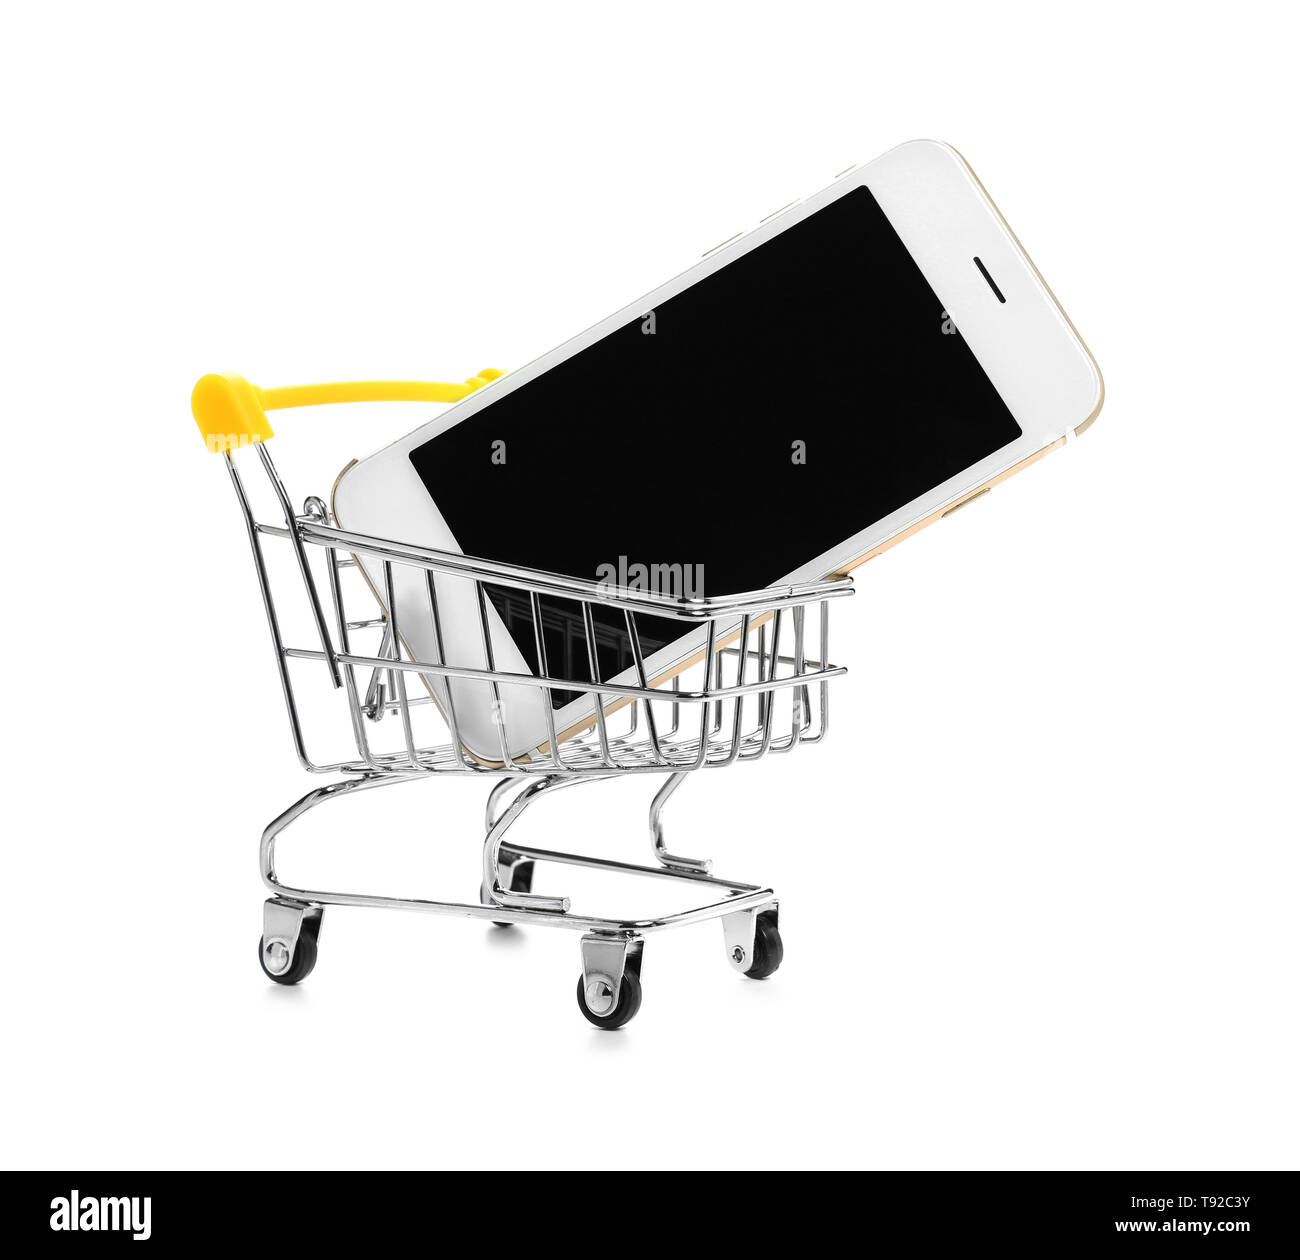 d19a262870d Small cart with mobile phone on white background. Shopping concept - Stock  Image